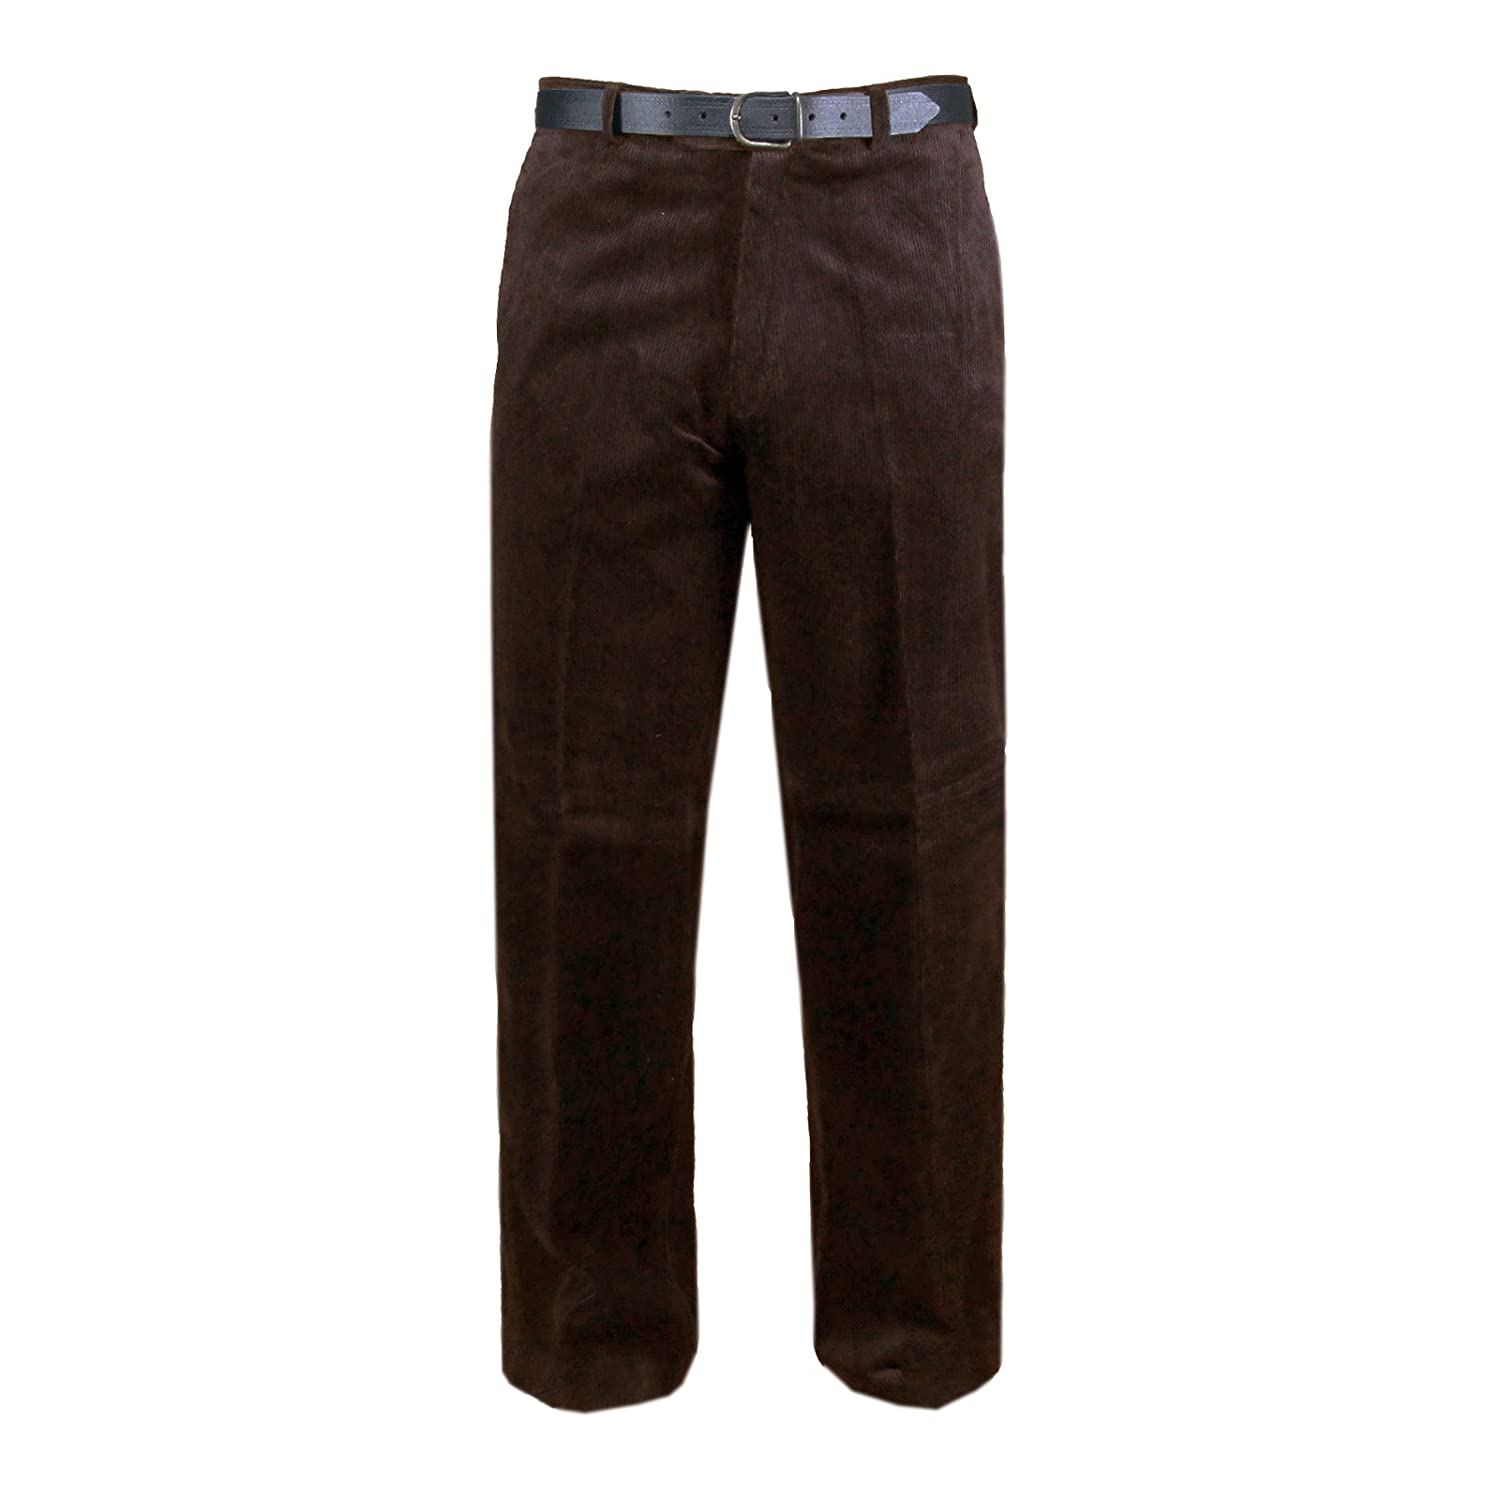 MyShoeStore Mens Cord Trousers Formal Smart Cotton Corduroy Trouser Casual Classic Pants With Pockets & Free Belt Plus Big Sizes 30-50